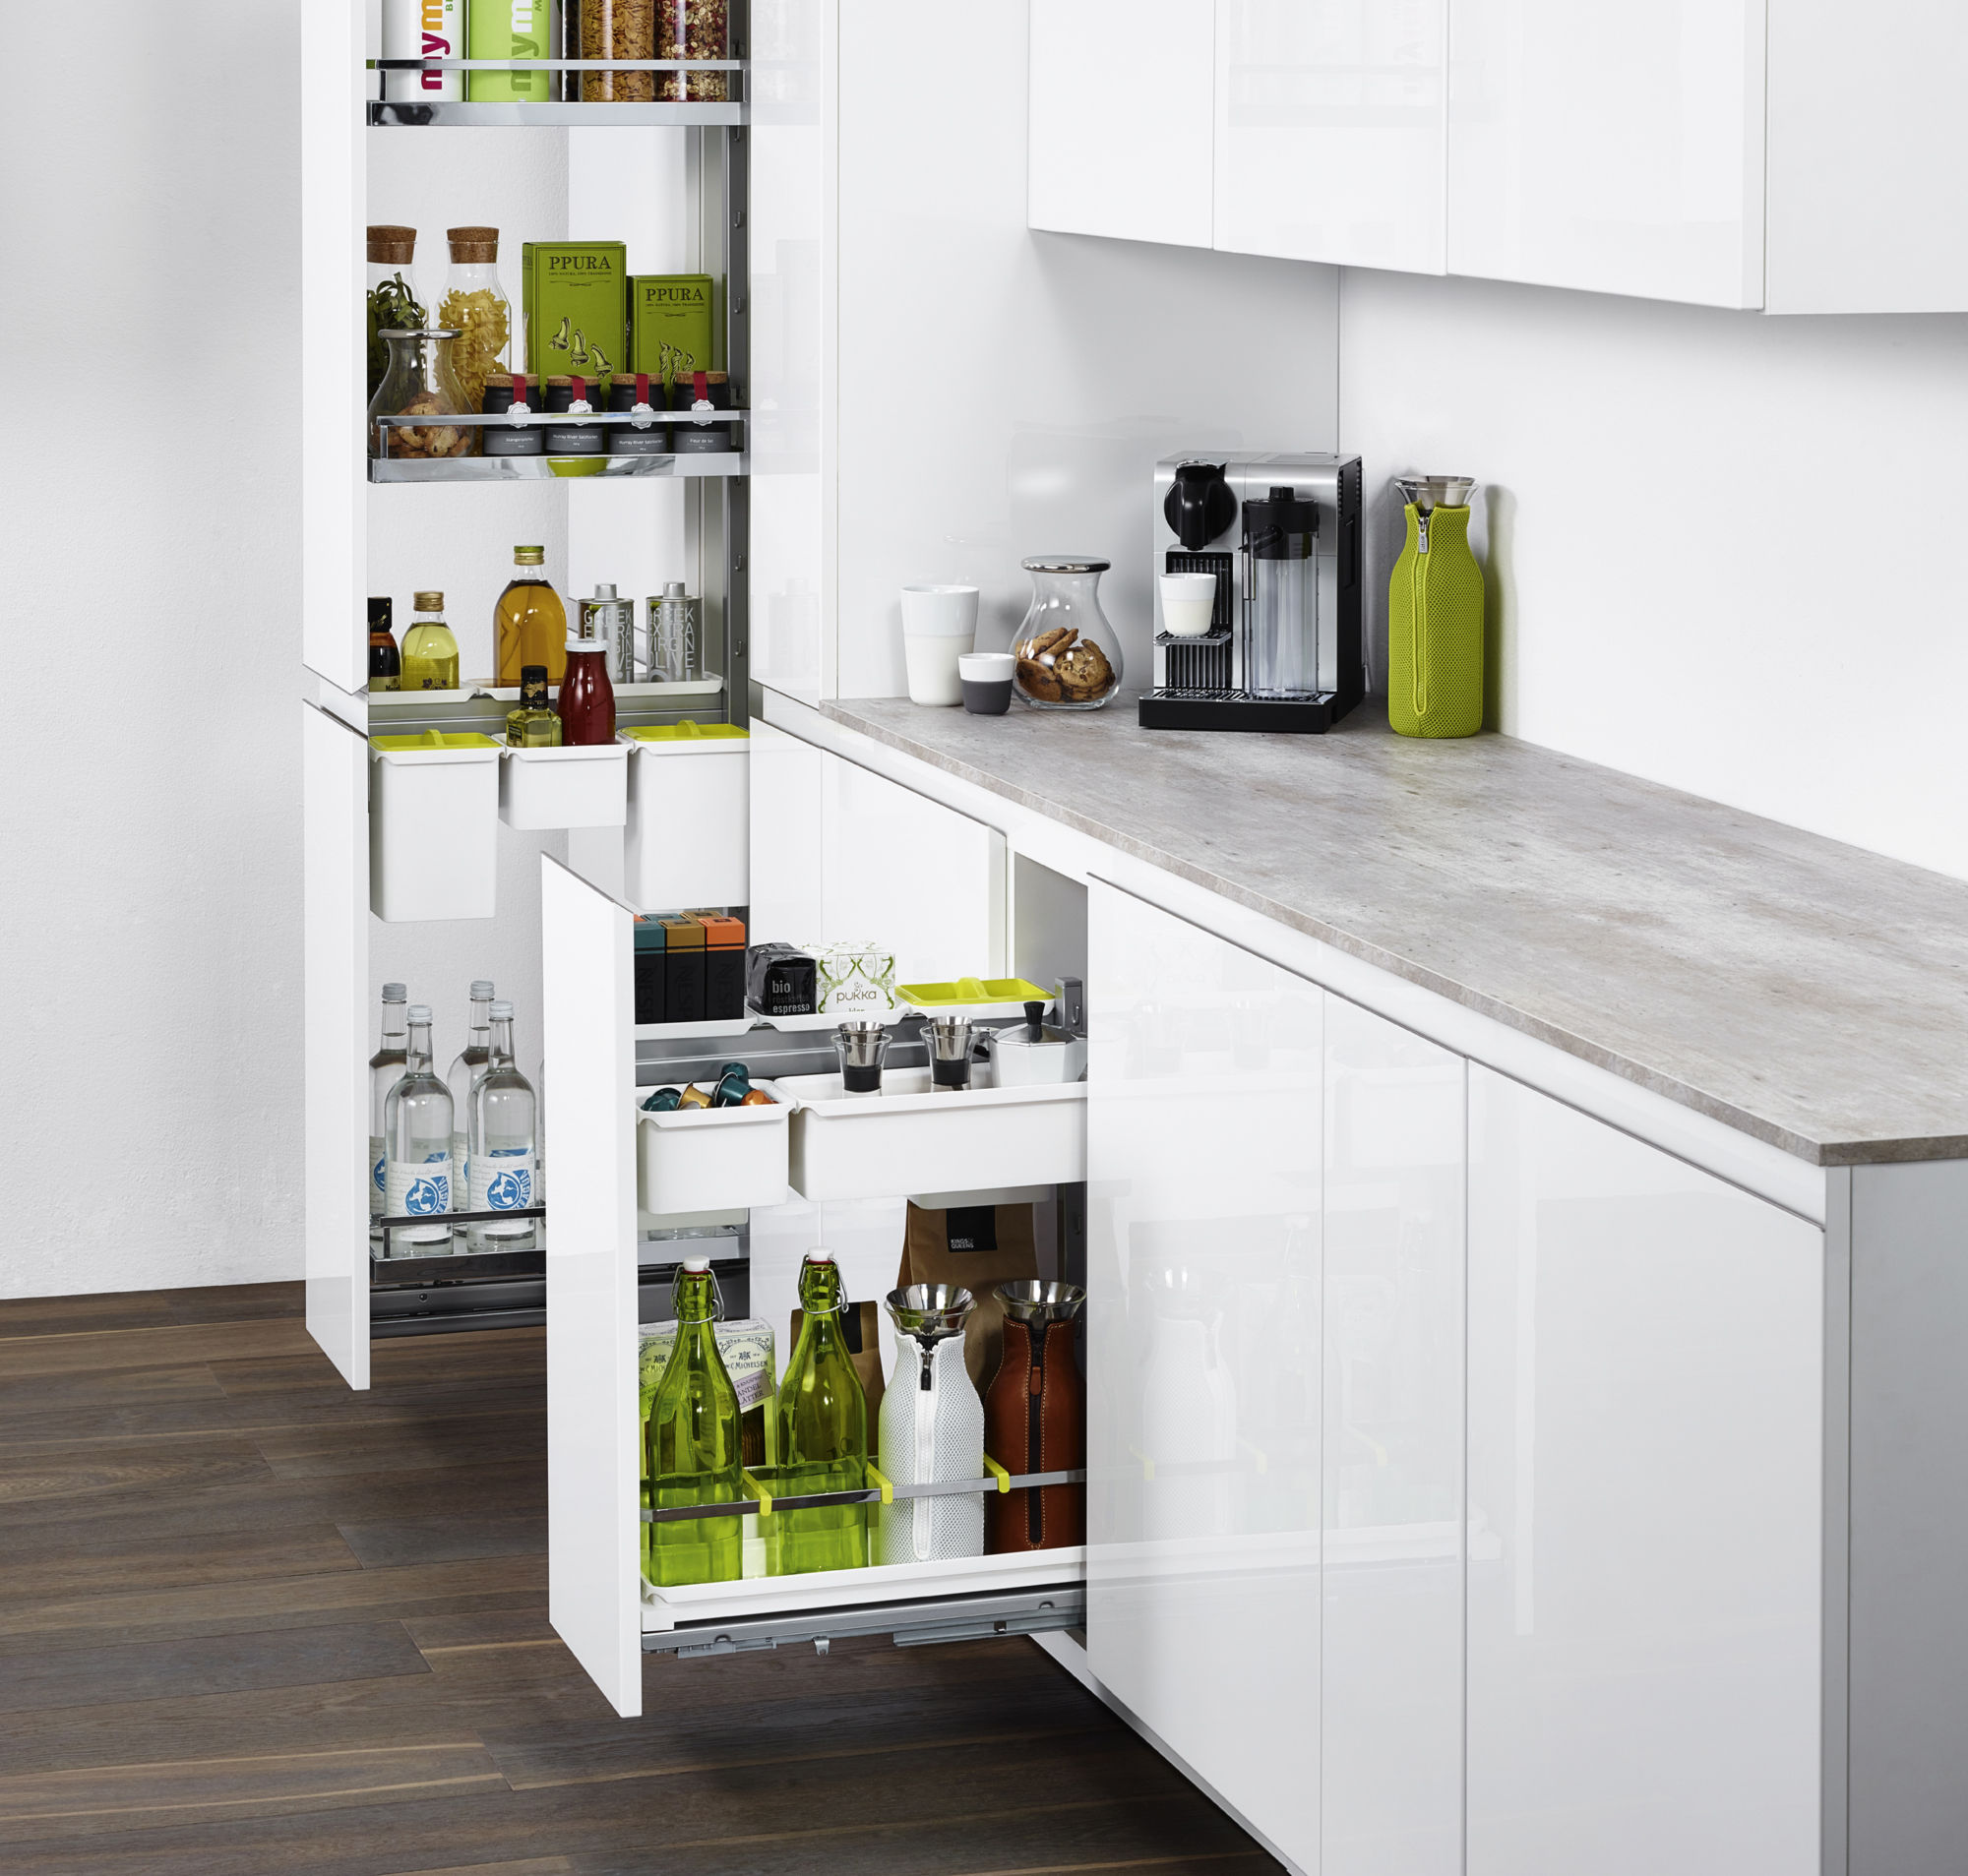 11 Creative Kitchen Upgrades: Creative And Considered Storage With PWS' YouBoXx